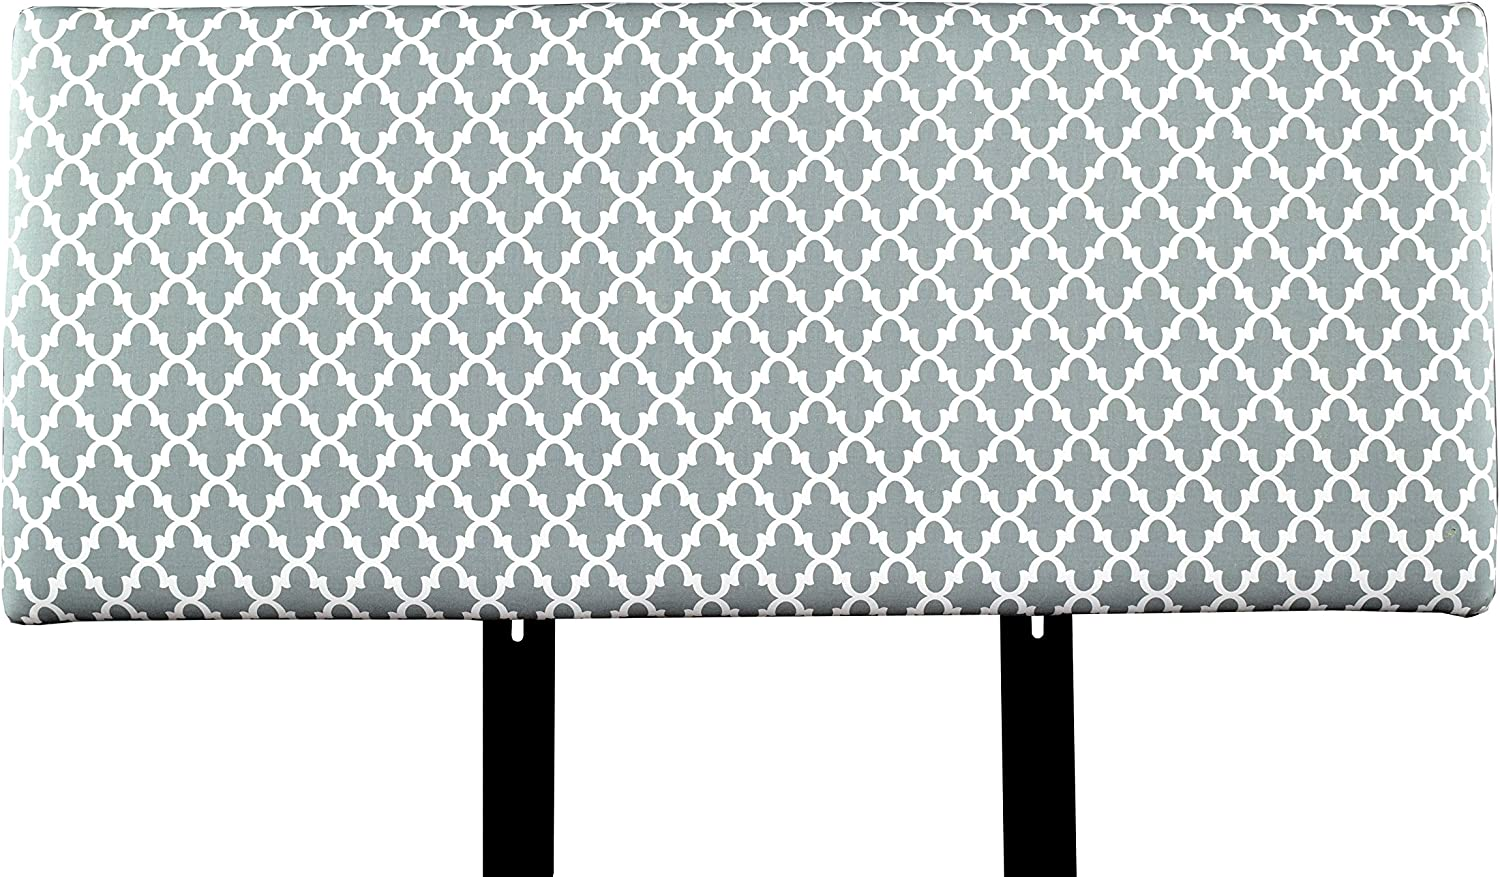 MJL Furniture Designs Alice Padded Bedroom Headboard Contemporary Styled Bedroom D cor, Fulton Series Headboard, Cool Gray Finish, Queen Sized, USA Made